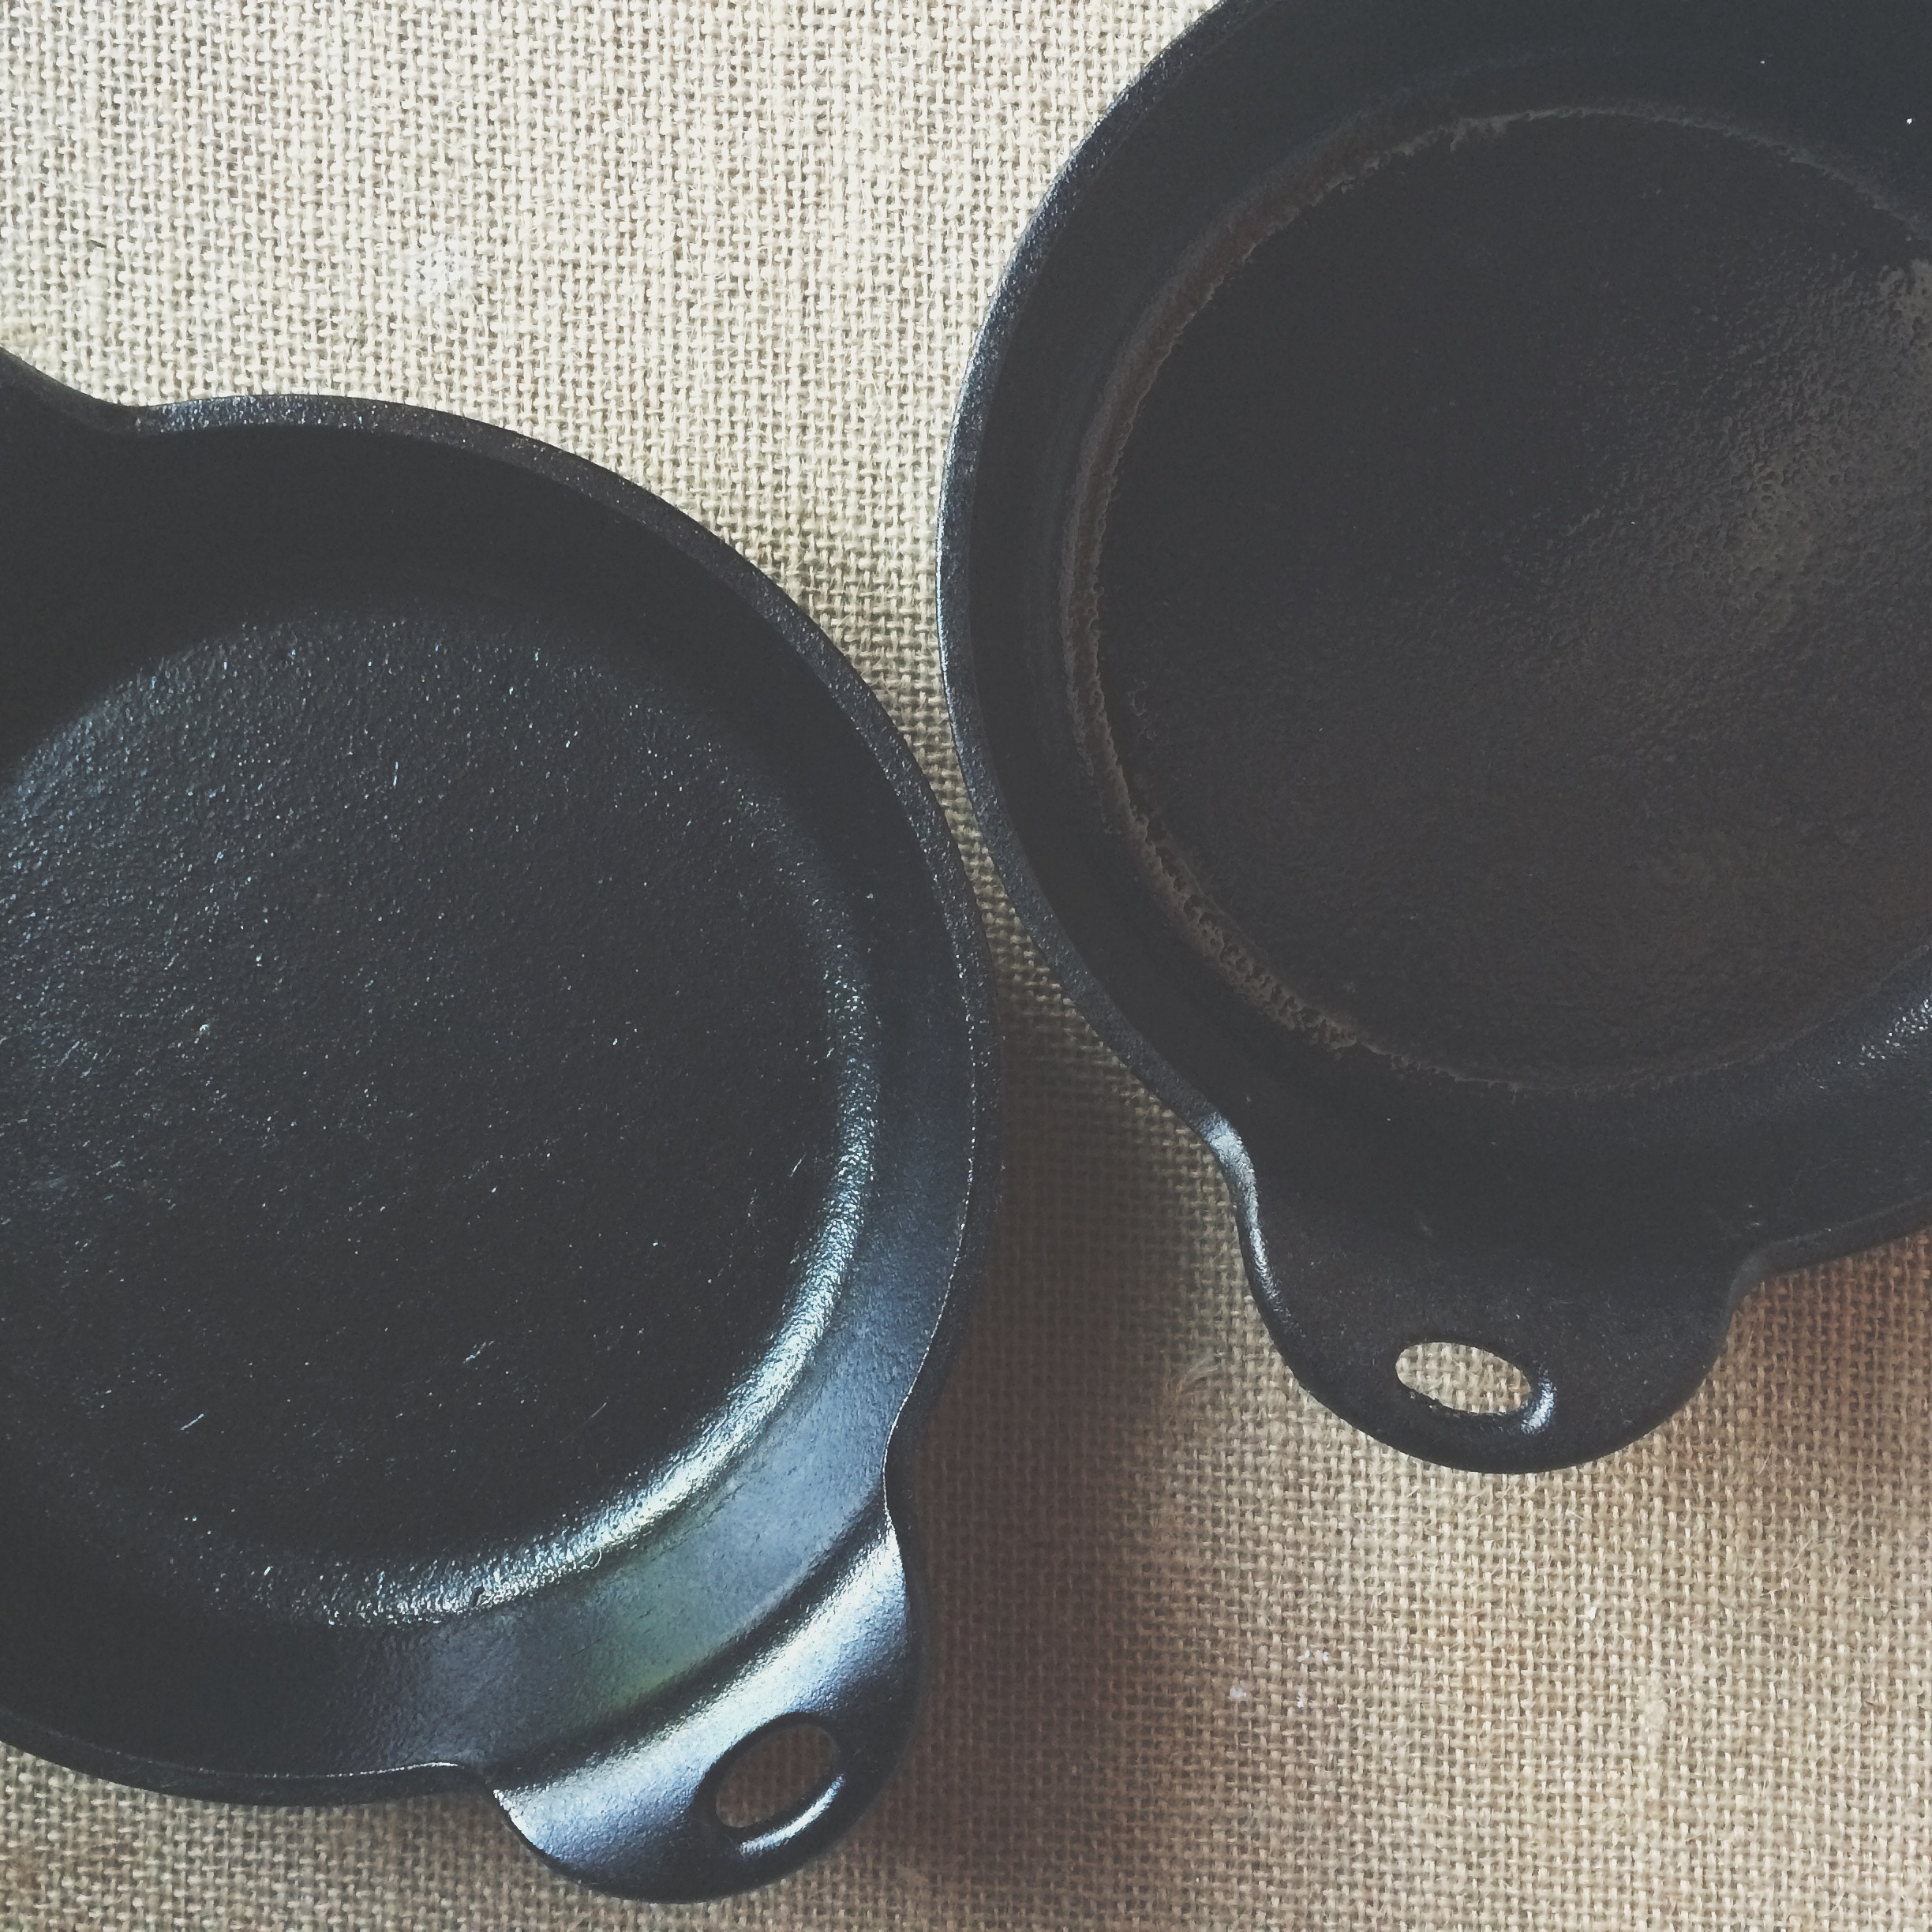 James has taught me the beauty of cooking with cast iron. We collect Lodge pieces, all made in the United States and boasting of a rich cultural history. For these mini pies, I  used these small round servers.